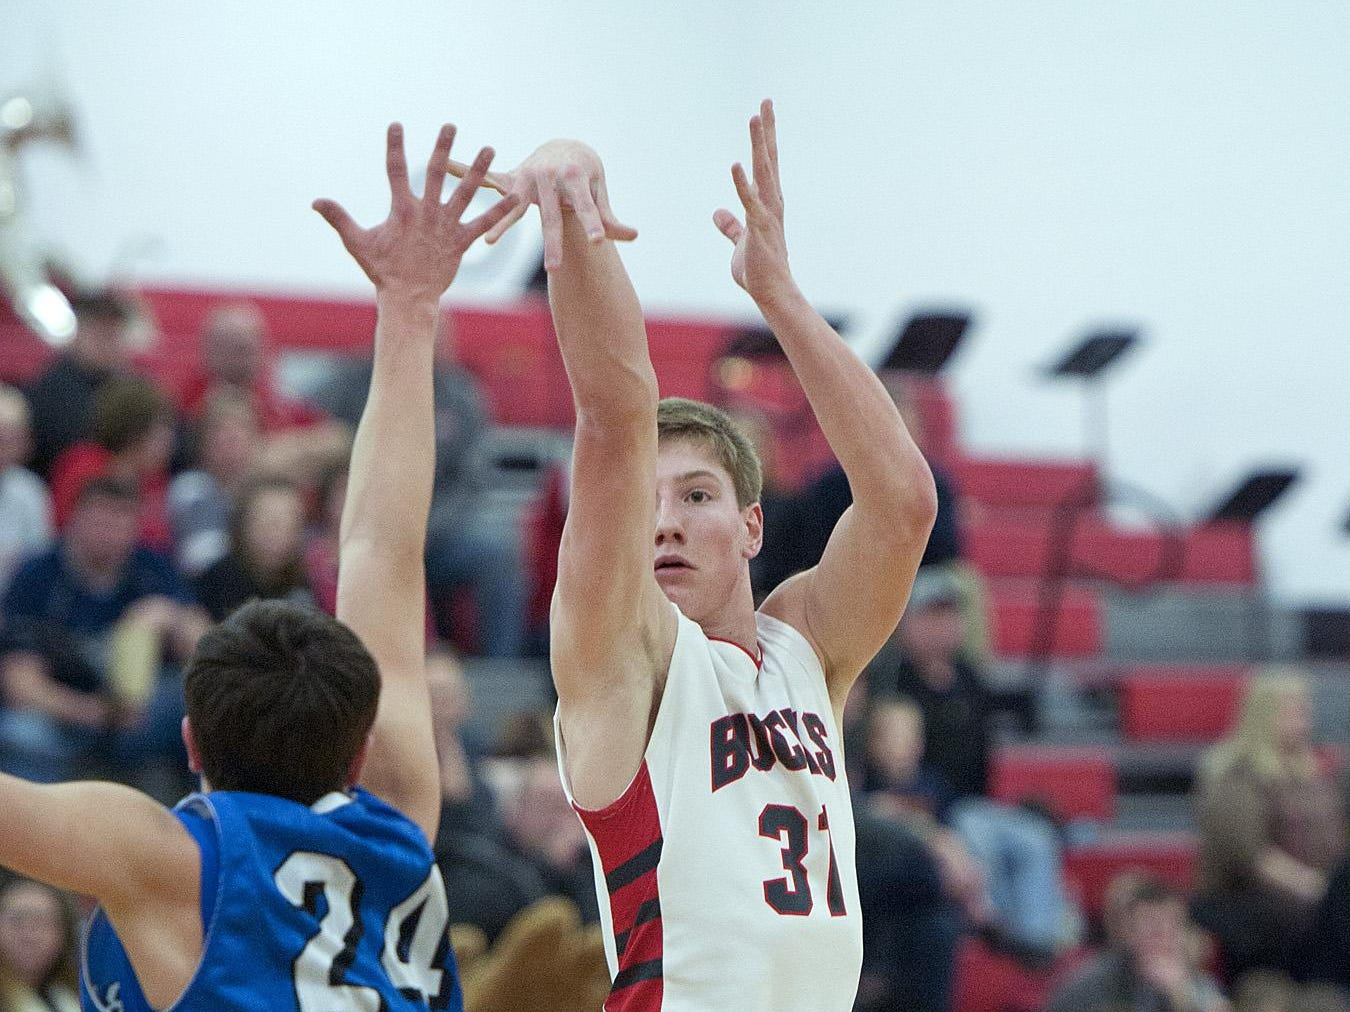 Buckeye Central's Grant Loy shoots a 3 against Wynford during the 2014-15 season.